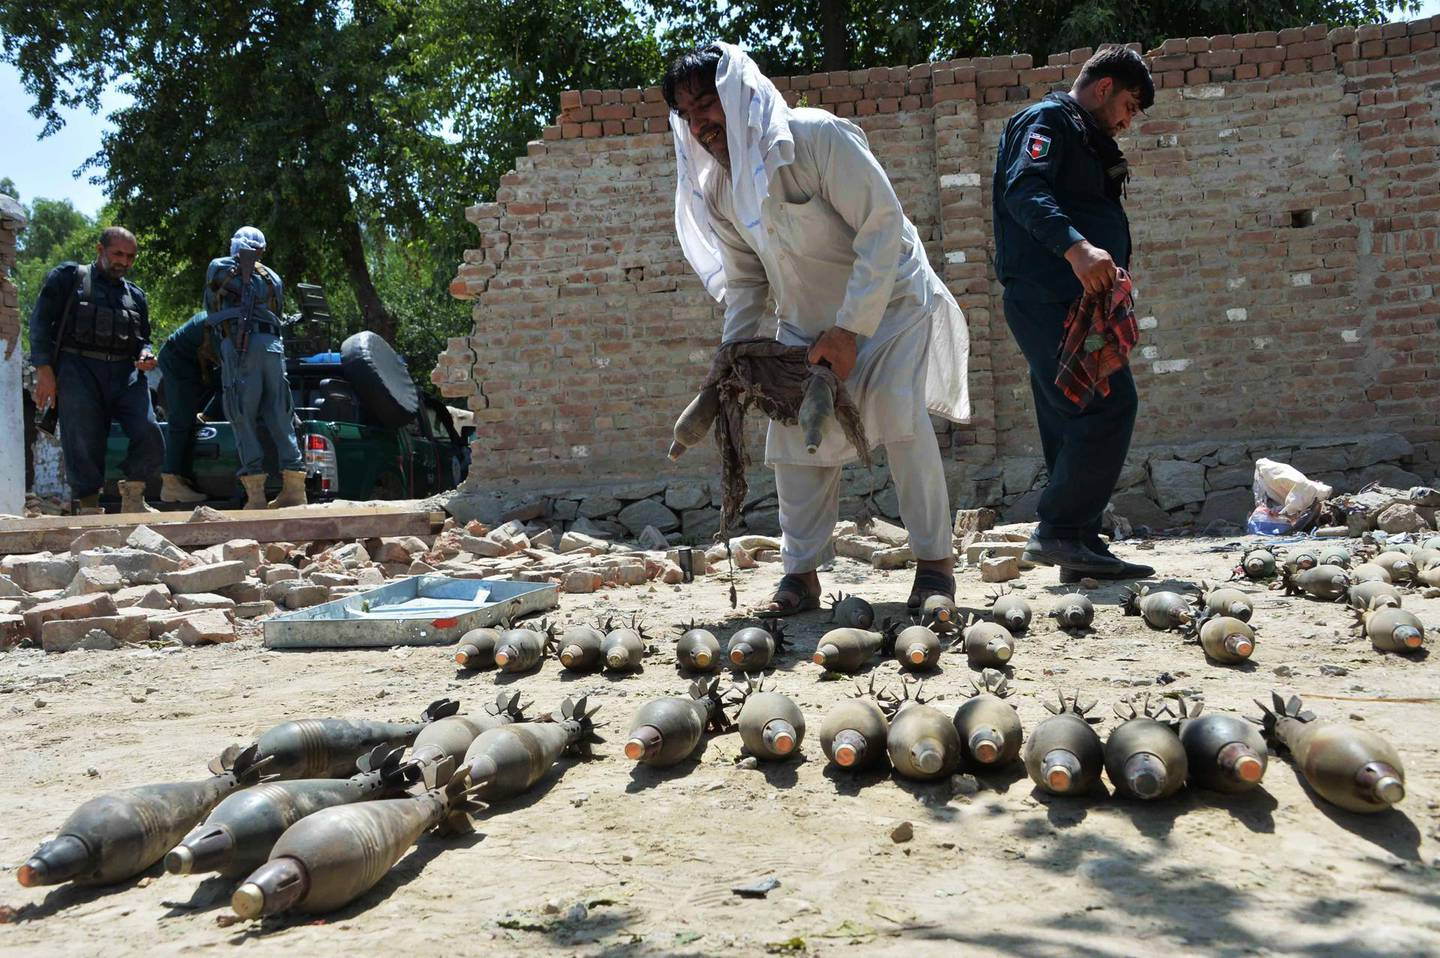 Afghan security officials inspect seized weapons near a damaged residential house from where a group of Islamic State (IS) gunmen were firing mortar shells while another group was raiding a prison, in Jalalabad on August 4, 2020. - At least 29 people were killed when gunmen attacked a jail in the eastern city of Jalalabad on August 3, shattering the relative calm of the final day of a three-day ceasefire between the Taliban and Afghan forces. (Photo by NOORULLAH SHIRZADA / AFP)